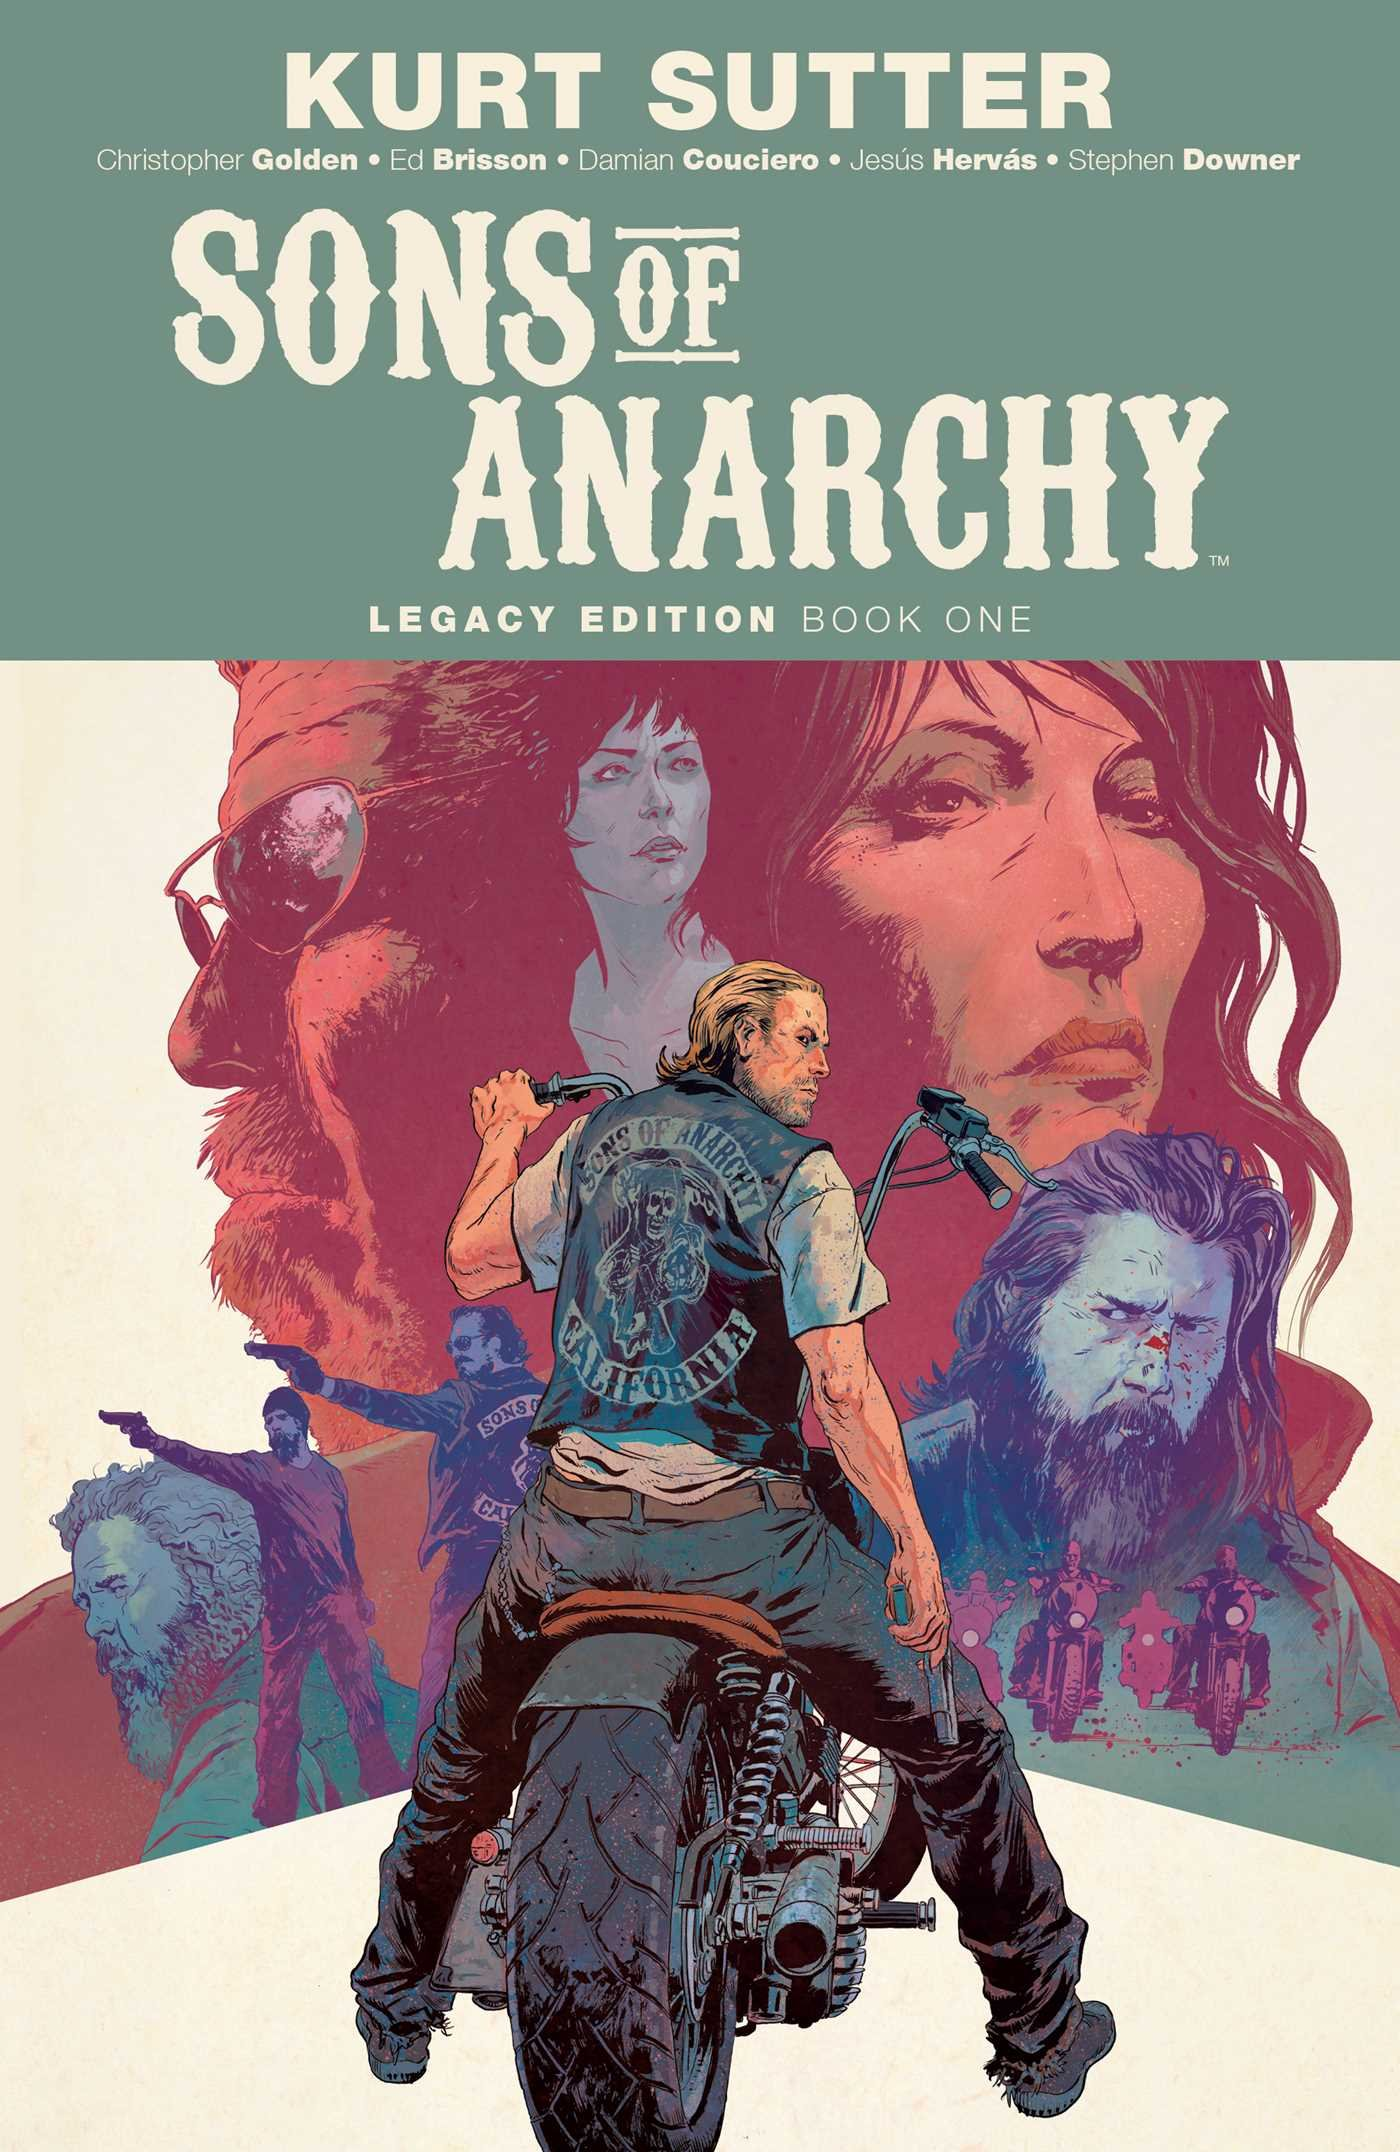 Anarchy sons book of